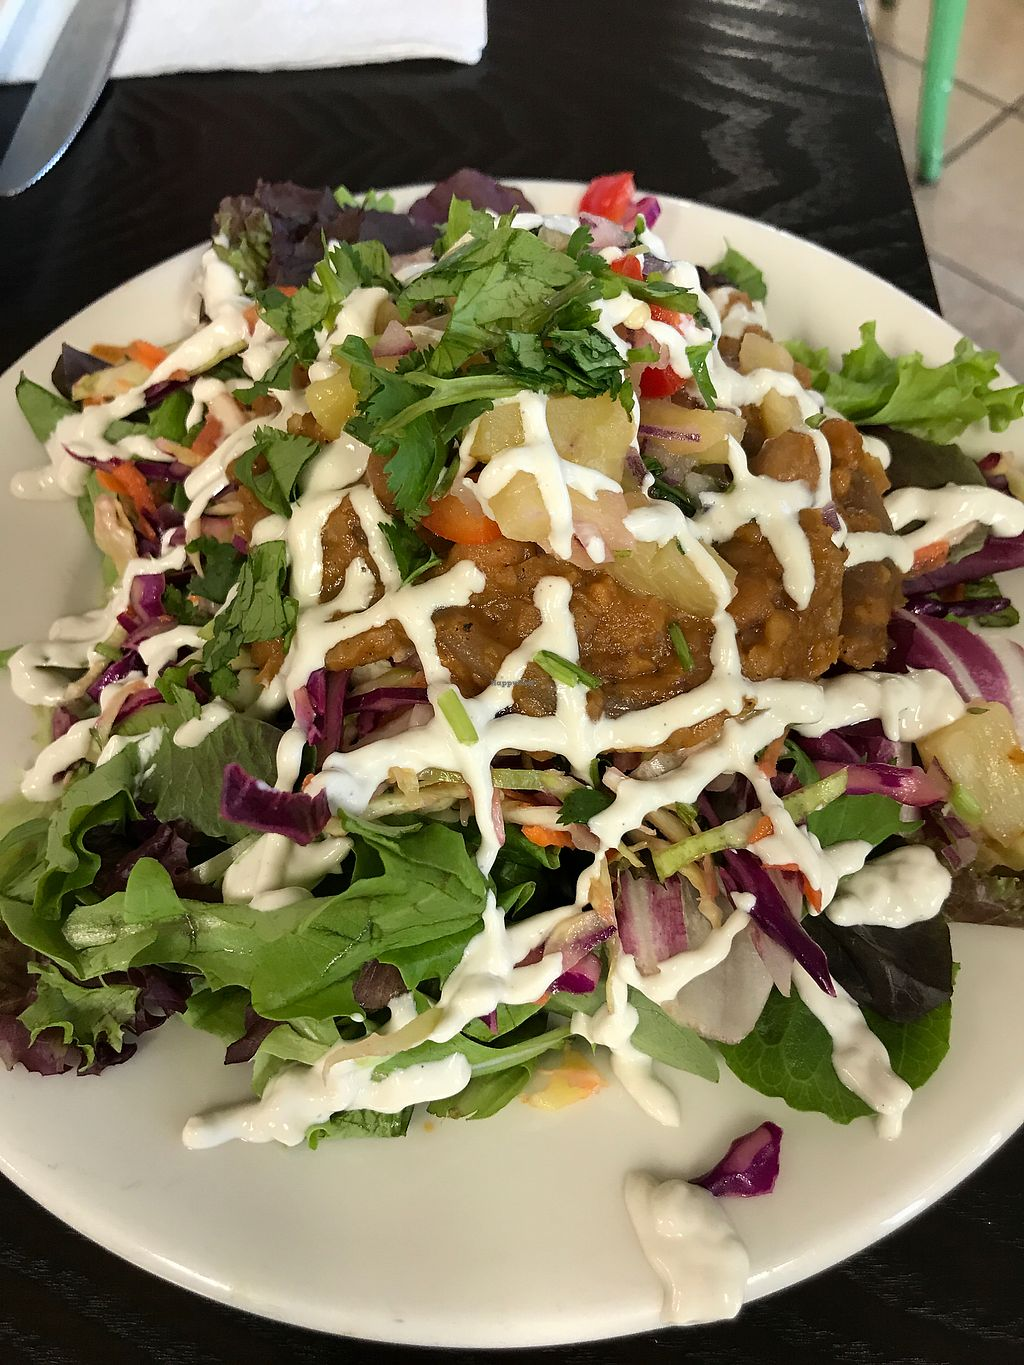 "Photo of Zest Kitchen  by <a href=""/members/profile/%24tonedVegan"">$tonedVegan</a> <br/>Taco Salad <br/> December 11, 2017  - <a href='/contact/abuse/image/94028/334460'>Report</a>"